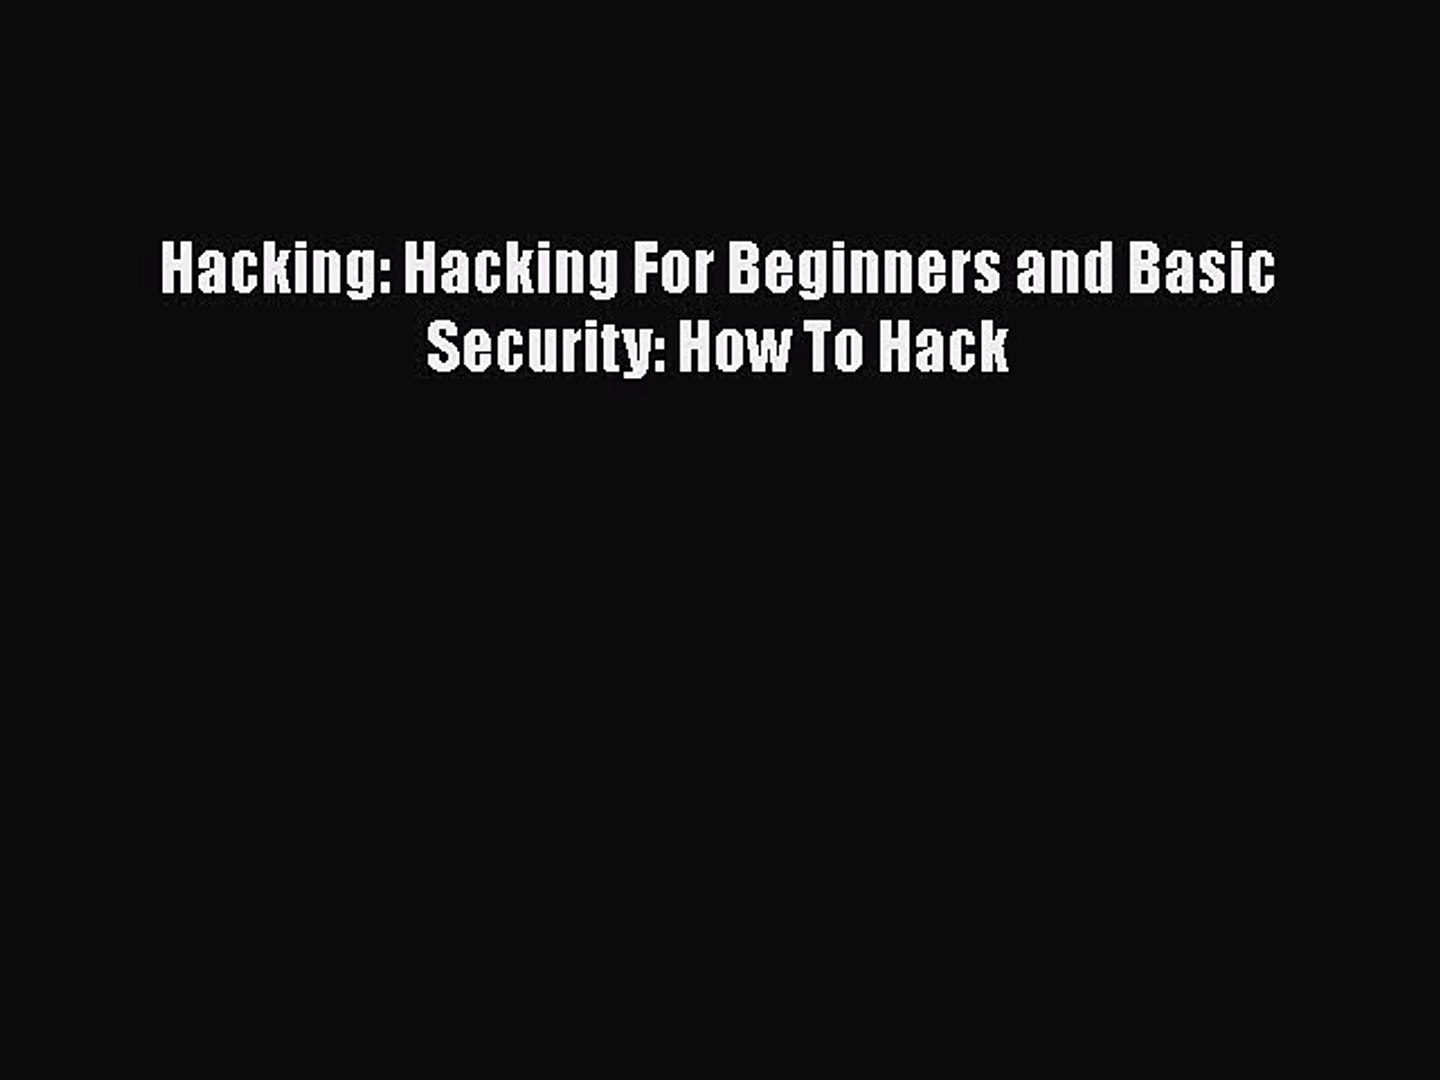 [PDF] Hacking: Hacking For Beginners and Basic Security: How To Hack [Read] Full Ebook